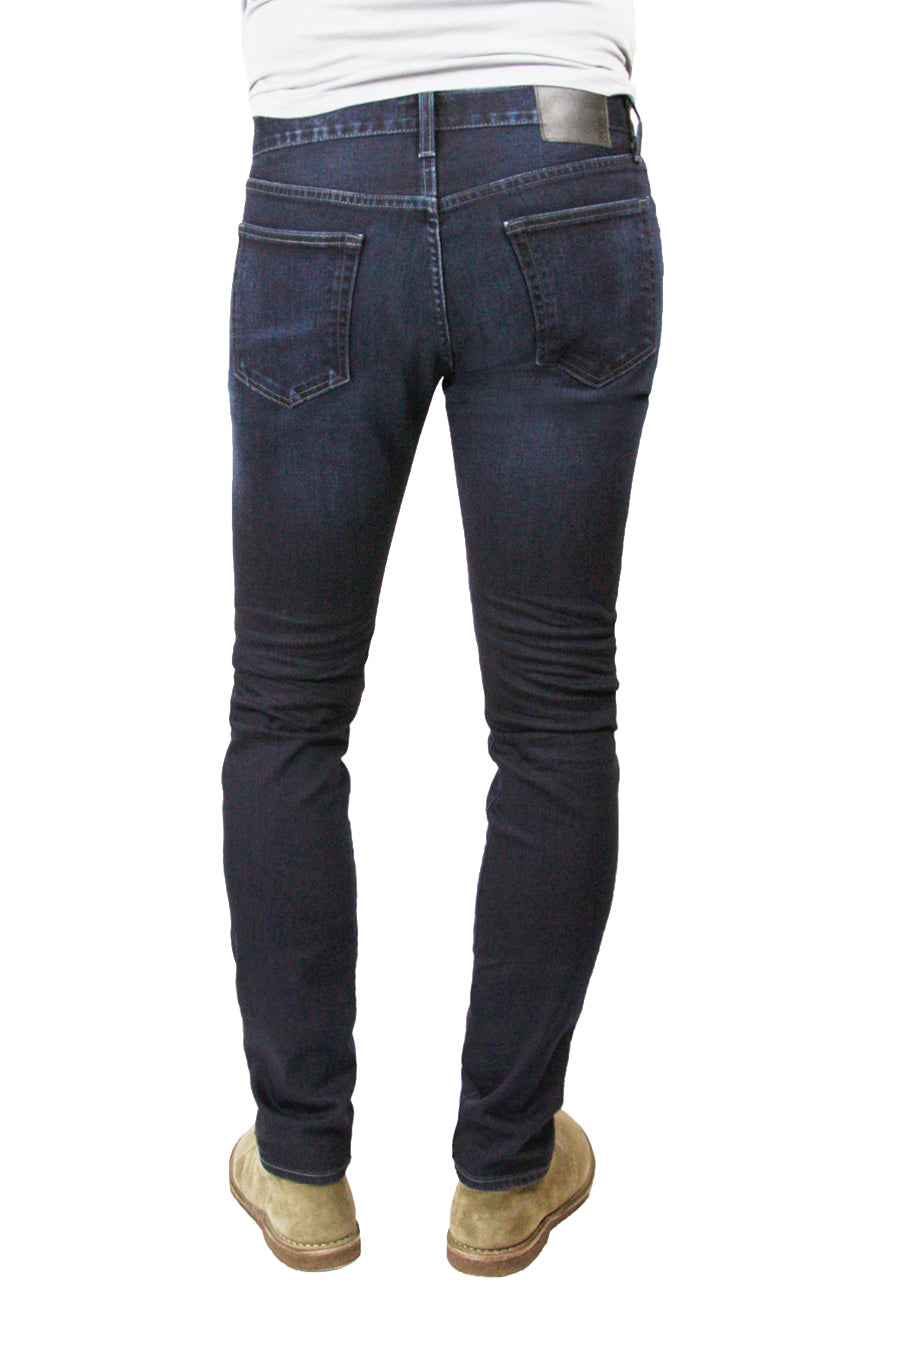 Back of S.M.N Studio's Hunter in Reid Men's Jeans - Slim dark indigo wash jean with slight contrast fading and whiskers